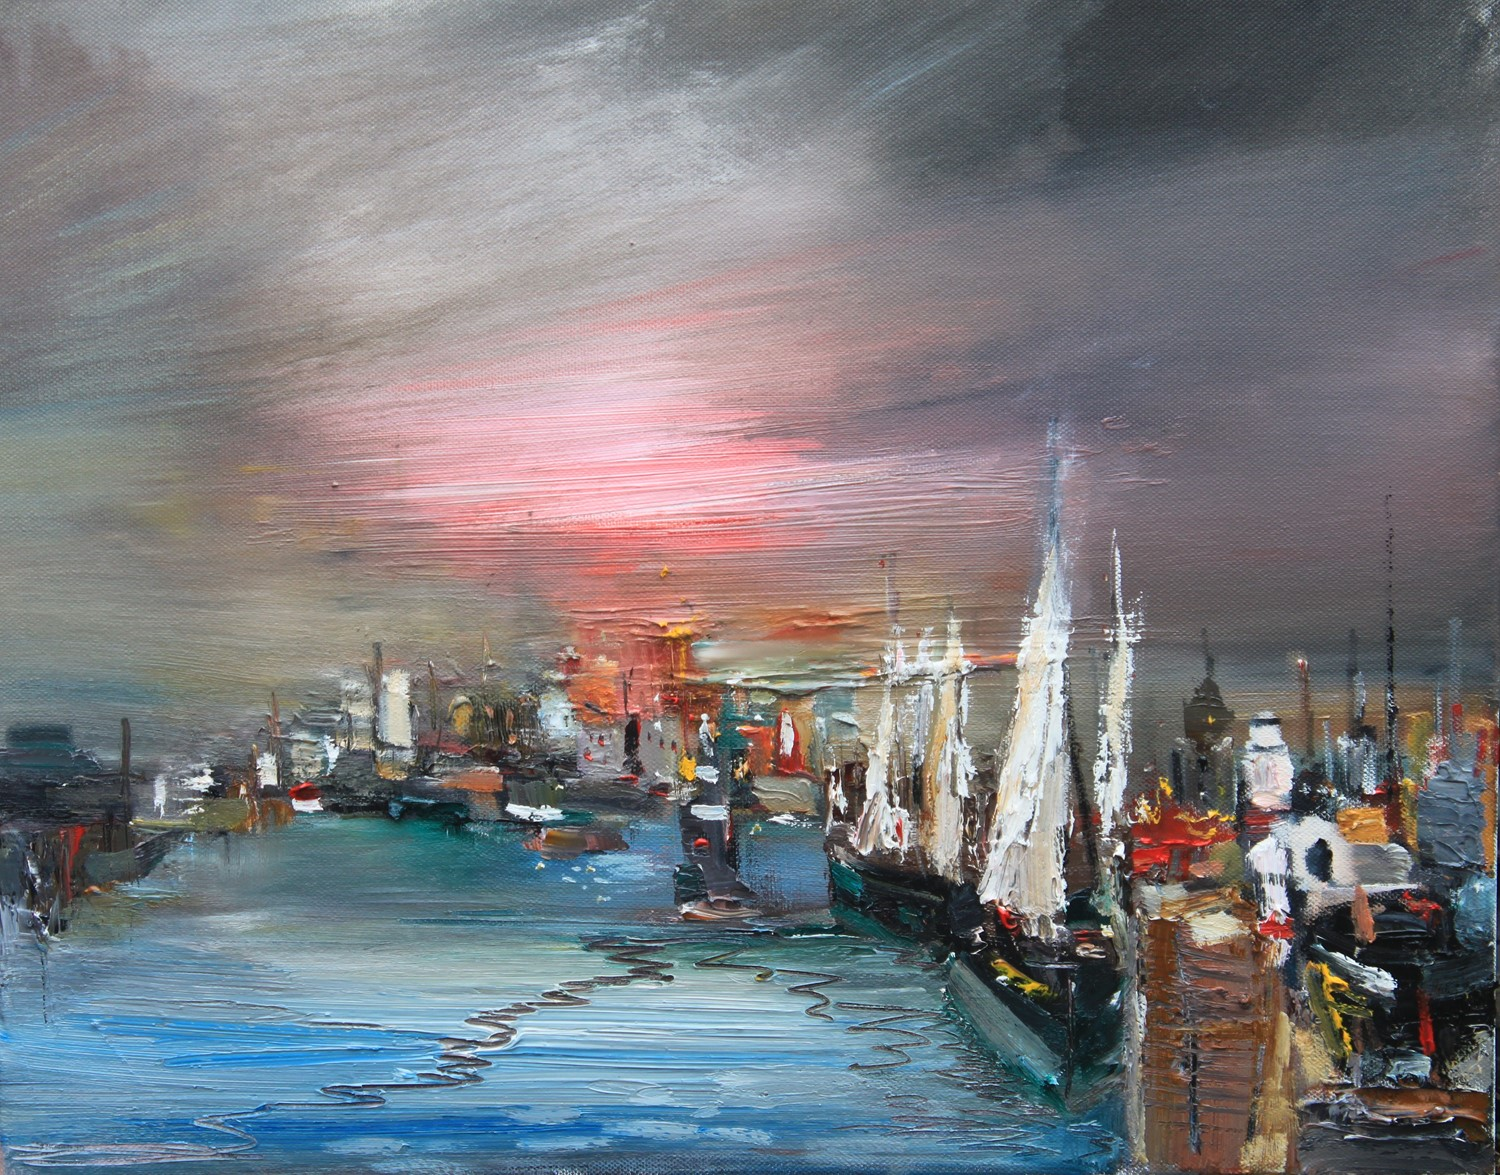 'Night at the Harbour' by artist Rosanne Barr